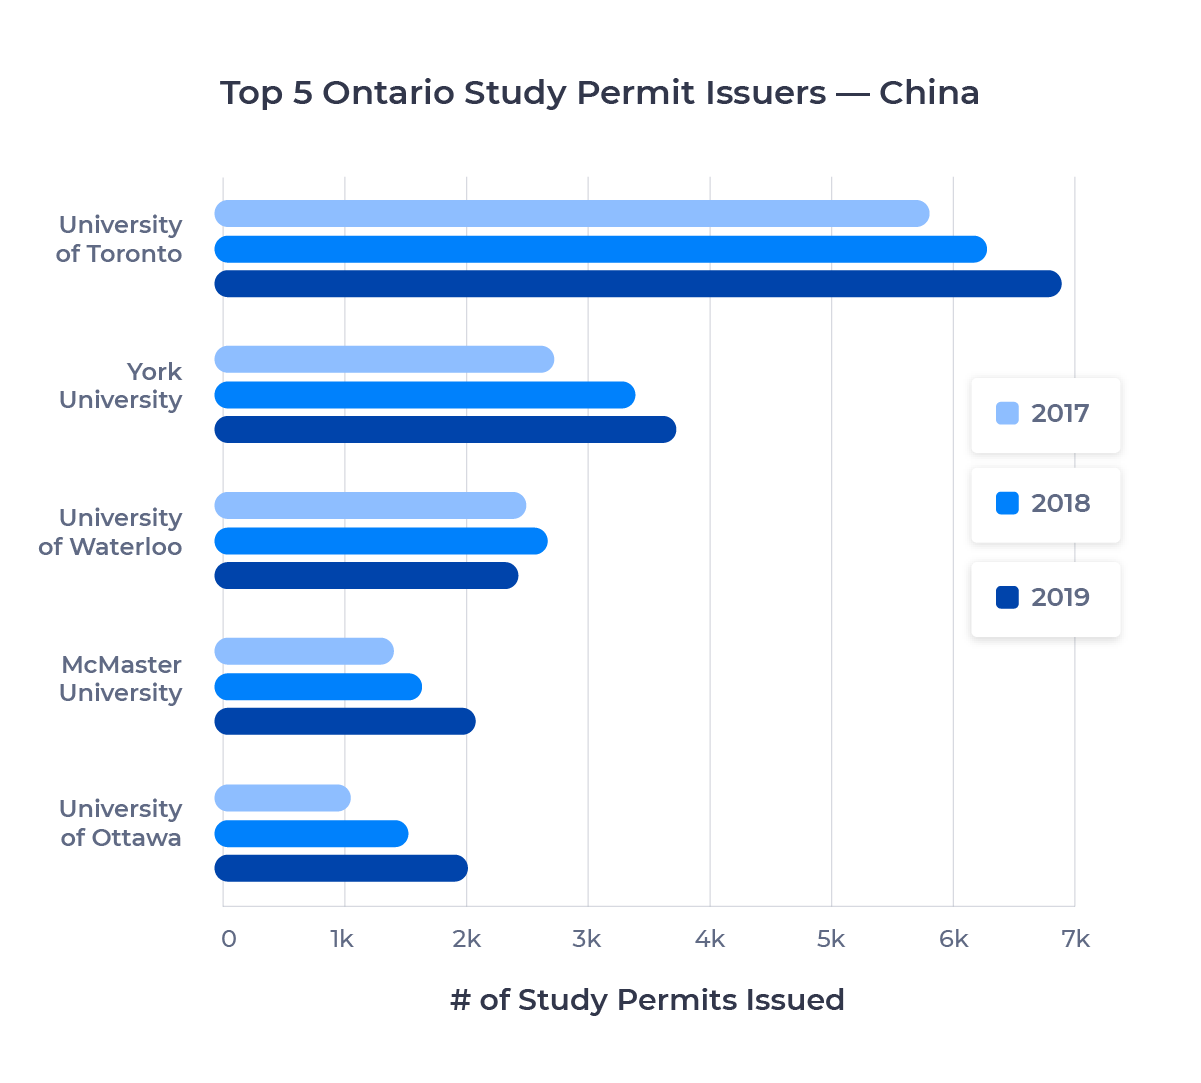 Bar chart showing the top five schools in Ontario for Chinese students by study permits issued. Described in detail below.